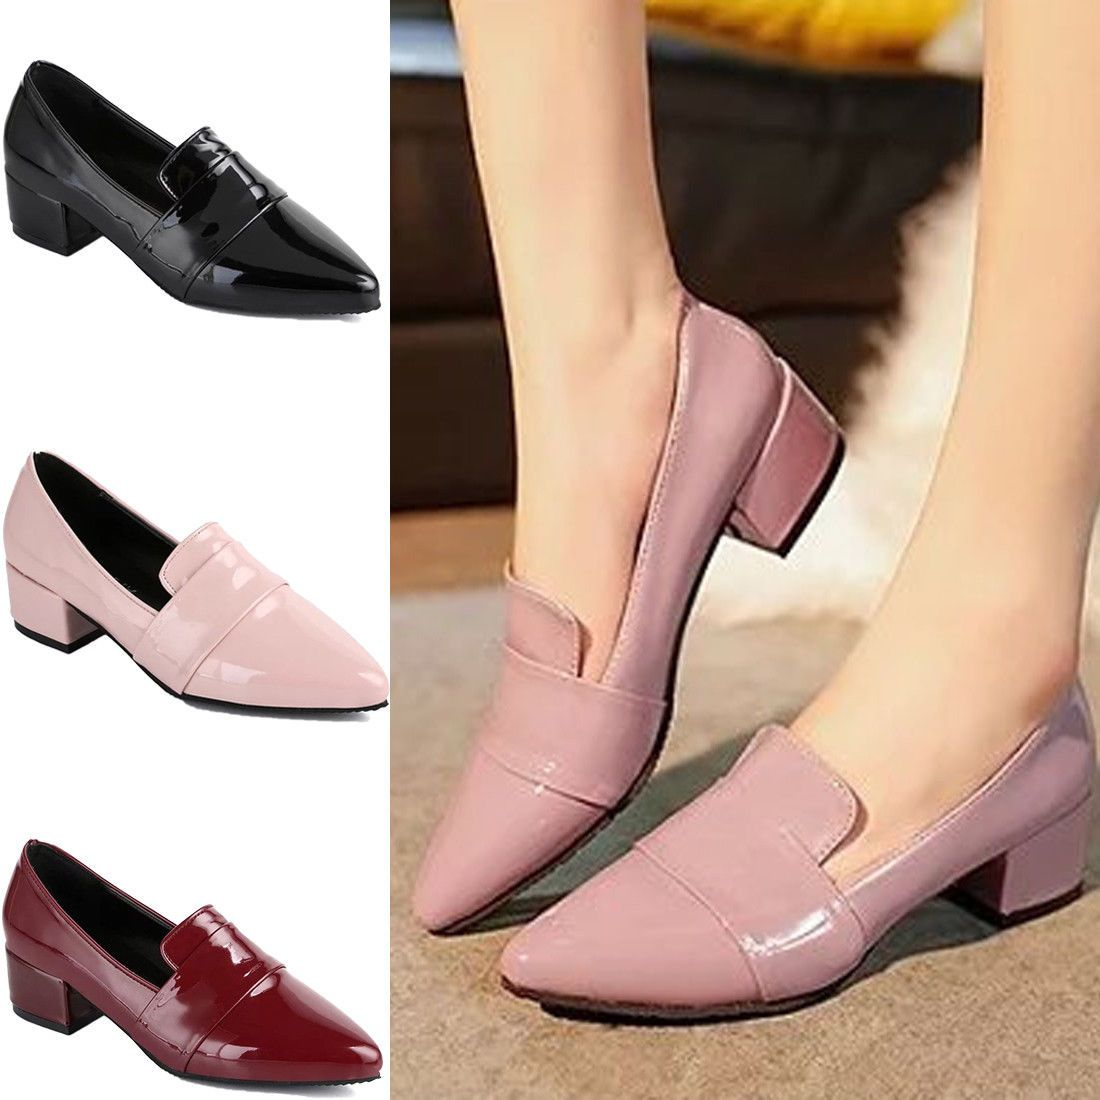 Plus Sz Womens Birtish Cuban Heel Pointy toe Patent Leather Shoes OL Work Loafer